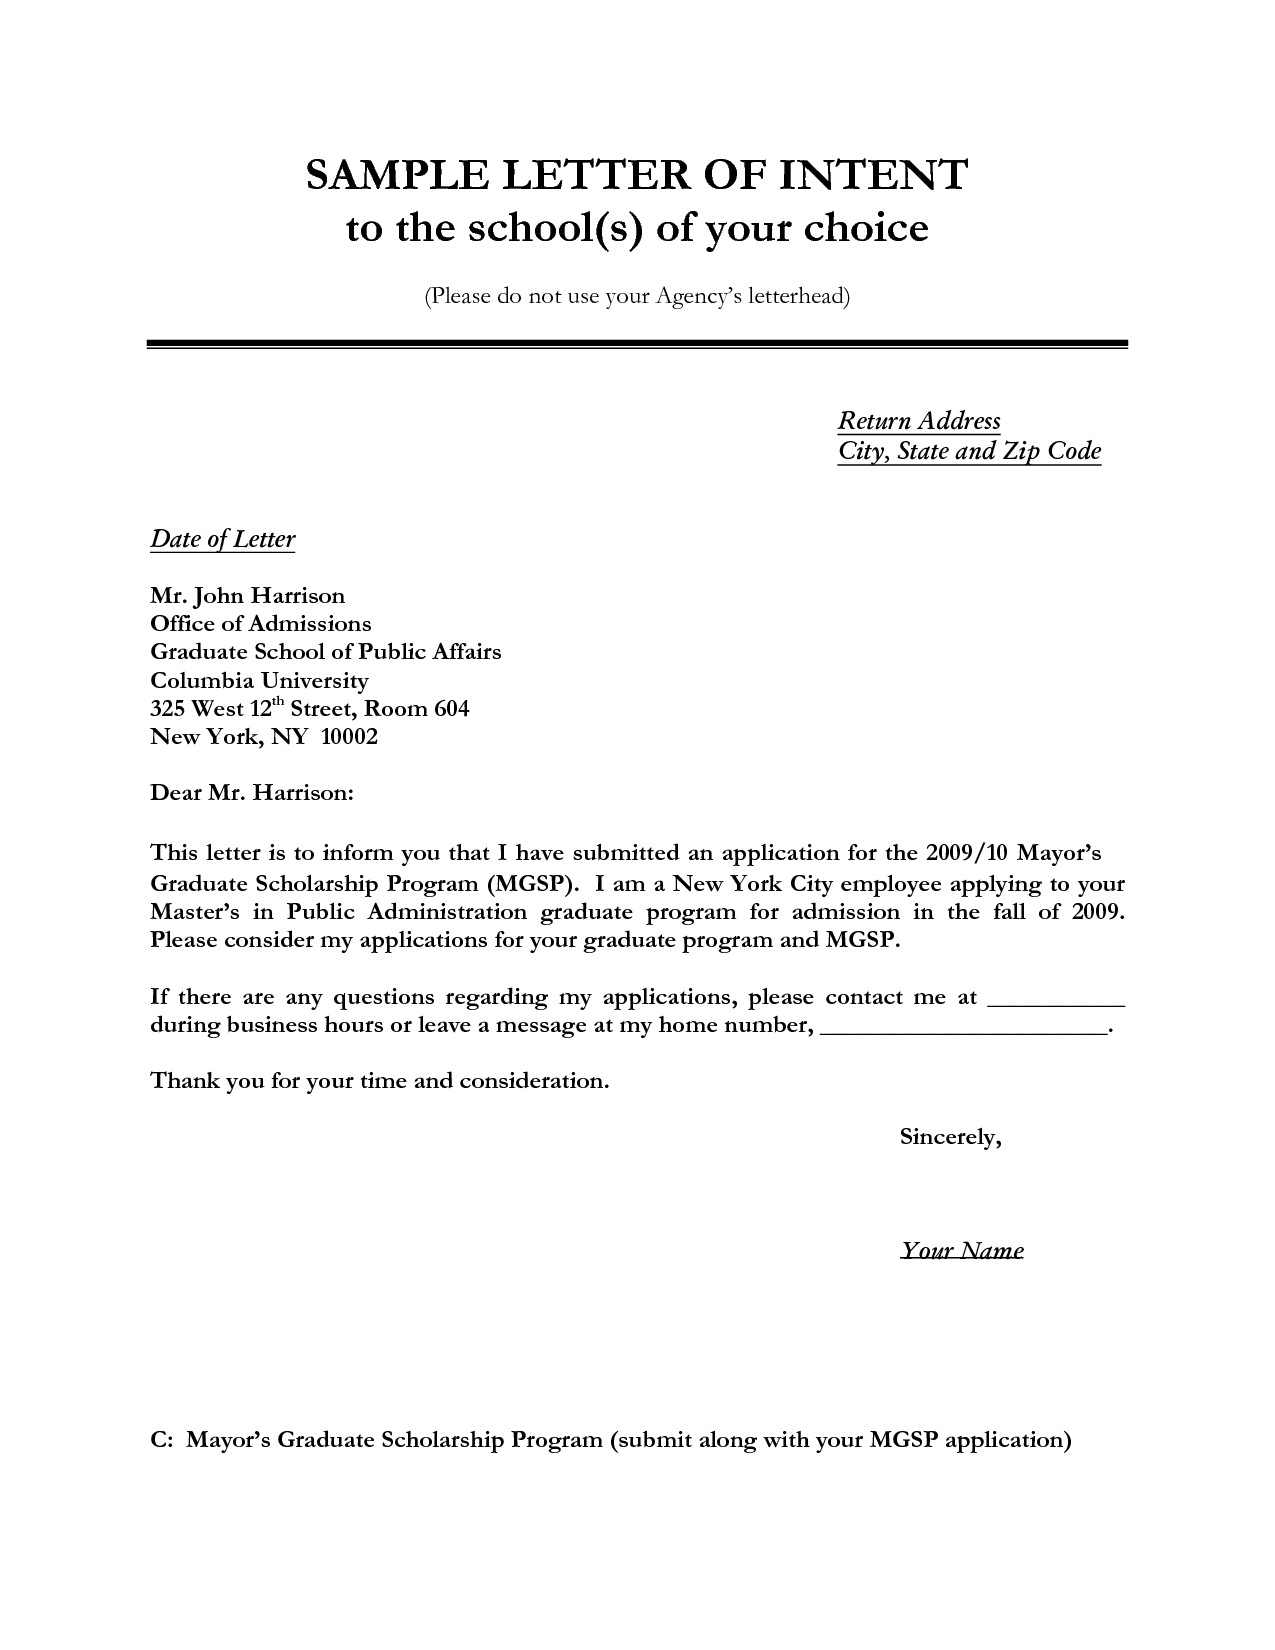 Real Estate Commission Letter Template - Letter Of Intent Sample